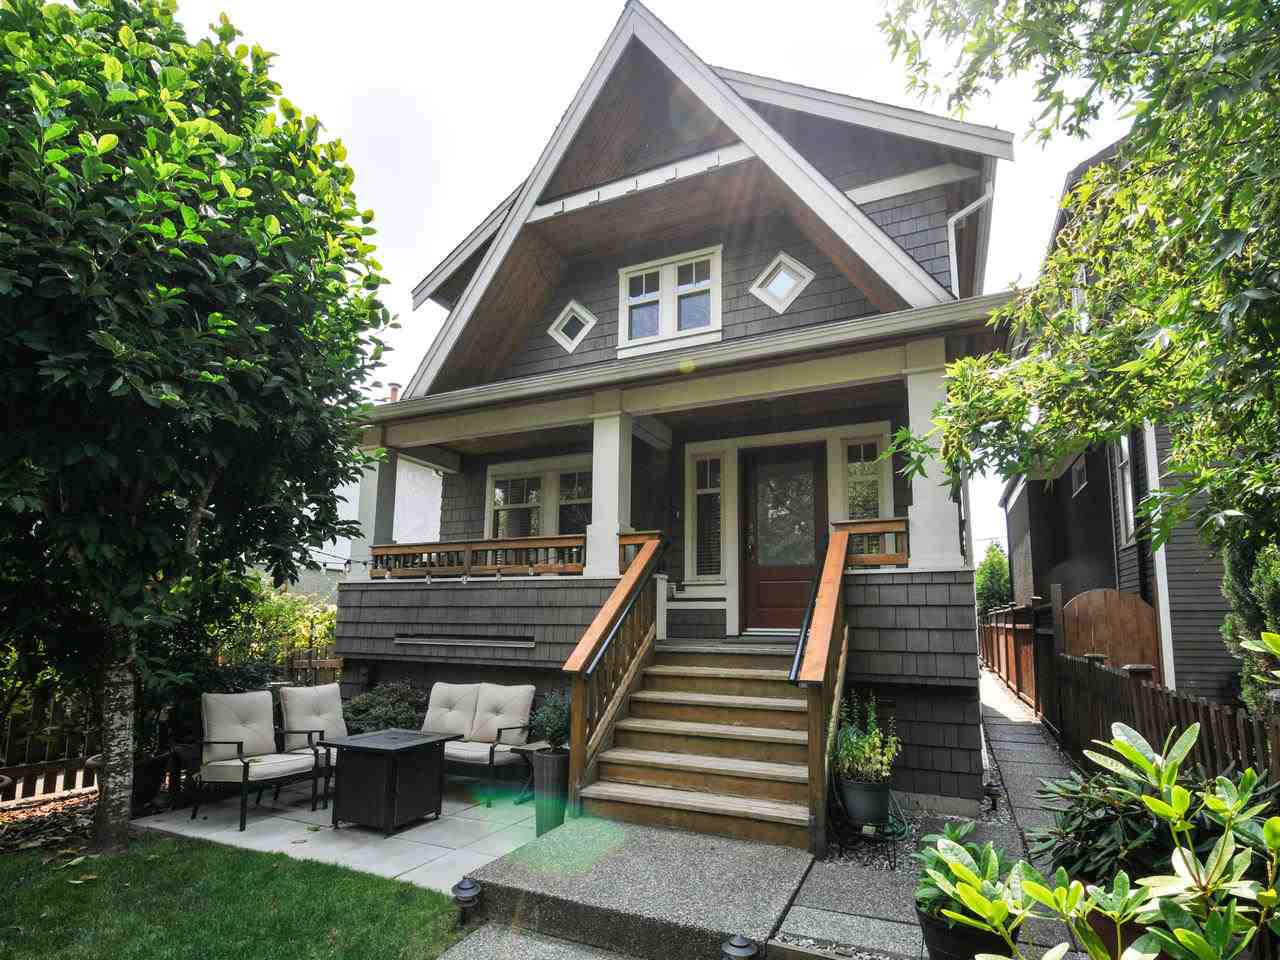 Main Photo: 1252 E 11TH AVENUE in Vancouver: Mount Pleasant VE House 1/2 Duplex for sale (Vancouver East)  : MLS®# R2303896